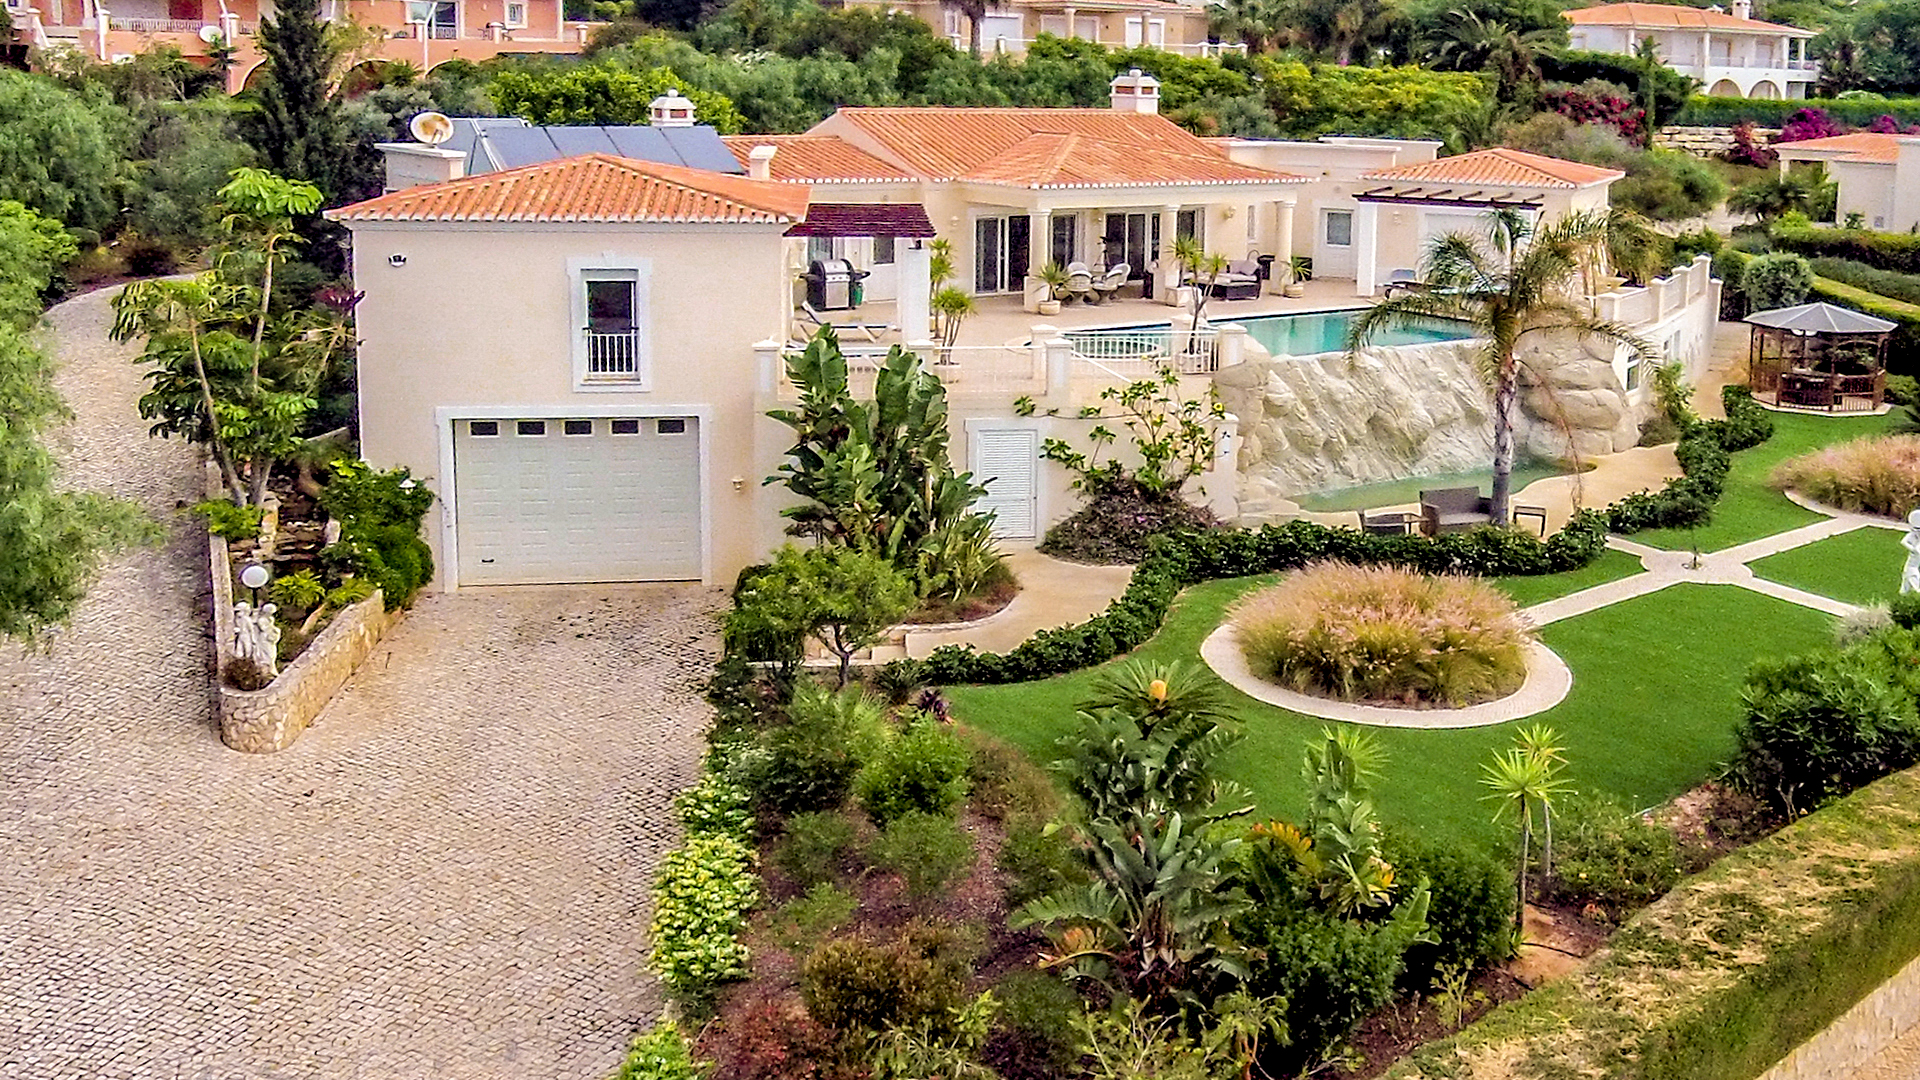 South facing, 3+1 bedroom villa 150m from the sea with privileged views, Nr Praia da Luz, West Algarve | LG1049 This spacious, modern villa is located in an elevated position near to the ocean and has been cleverly designed giving sea views from almost every room. Located not far from the beautiful beach town of Praia da Luz and with 5 minutes drive of Boavista Golf Course.